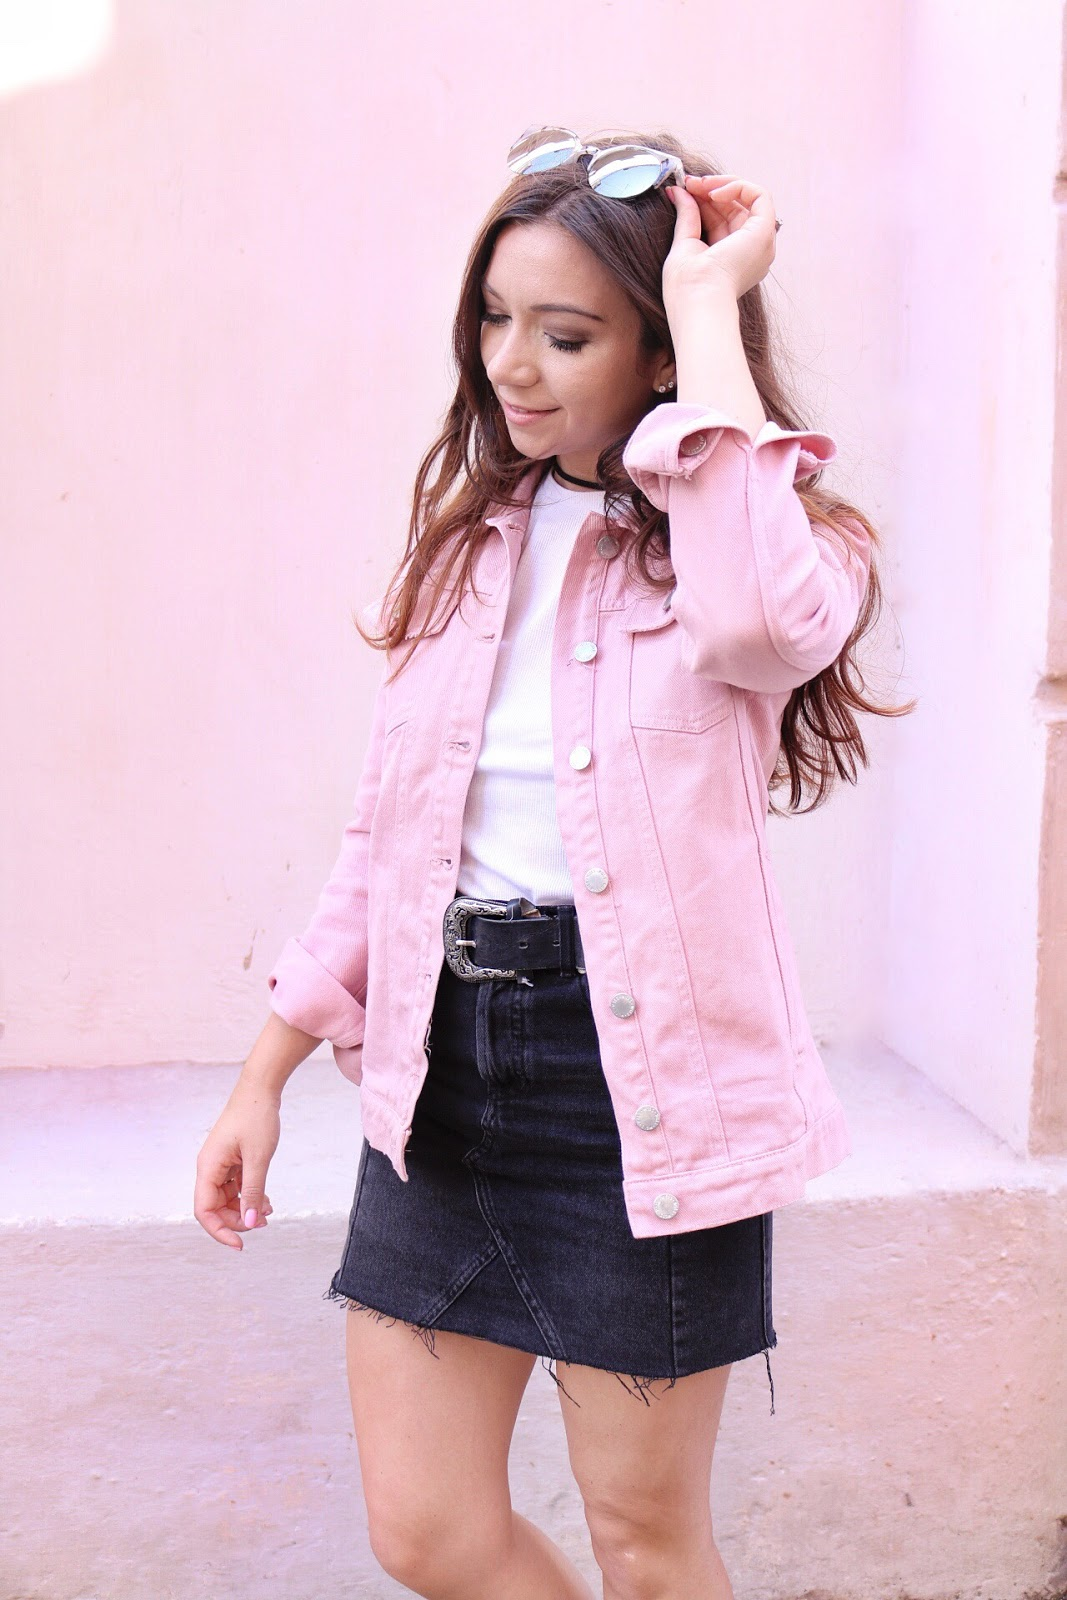 Three Ways To Style A Denim Skirt, denim skirt outfit, outfit, denim skirt, miss selfridge, things to wear with a denim skirt, pink denim jacket, band tee, fashion, style, outfit, style guide, dizzybrunette3 fashion